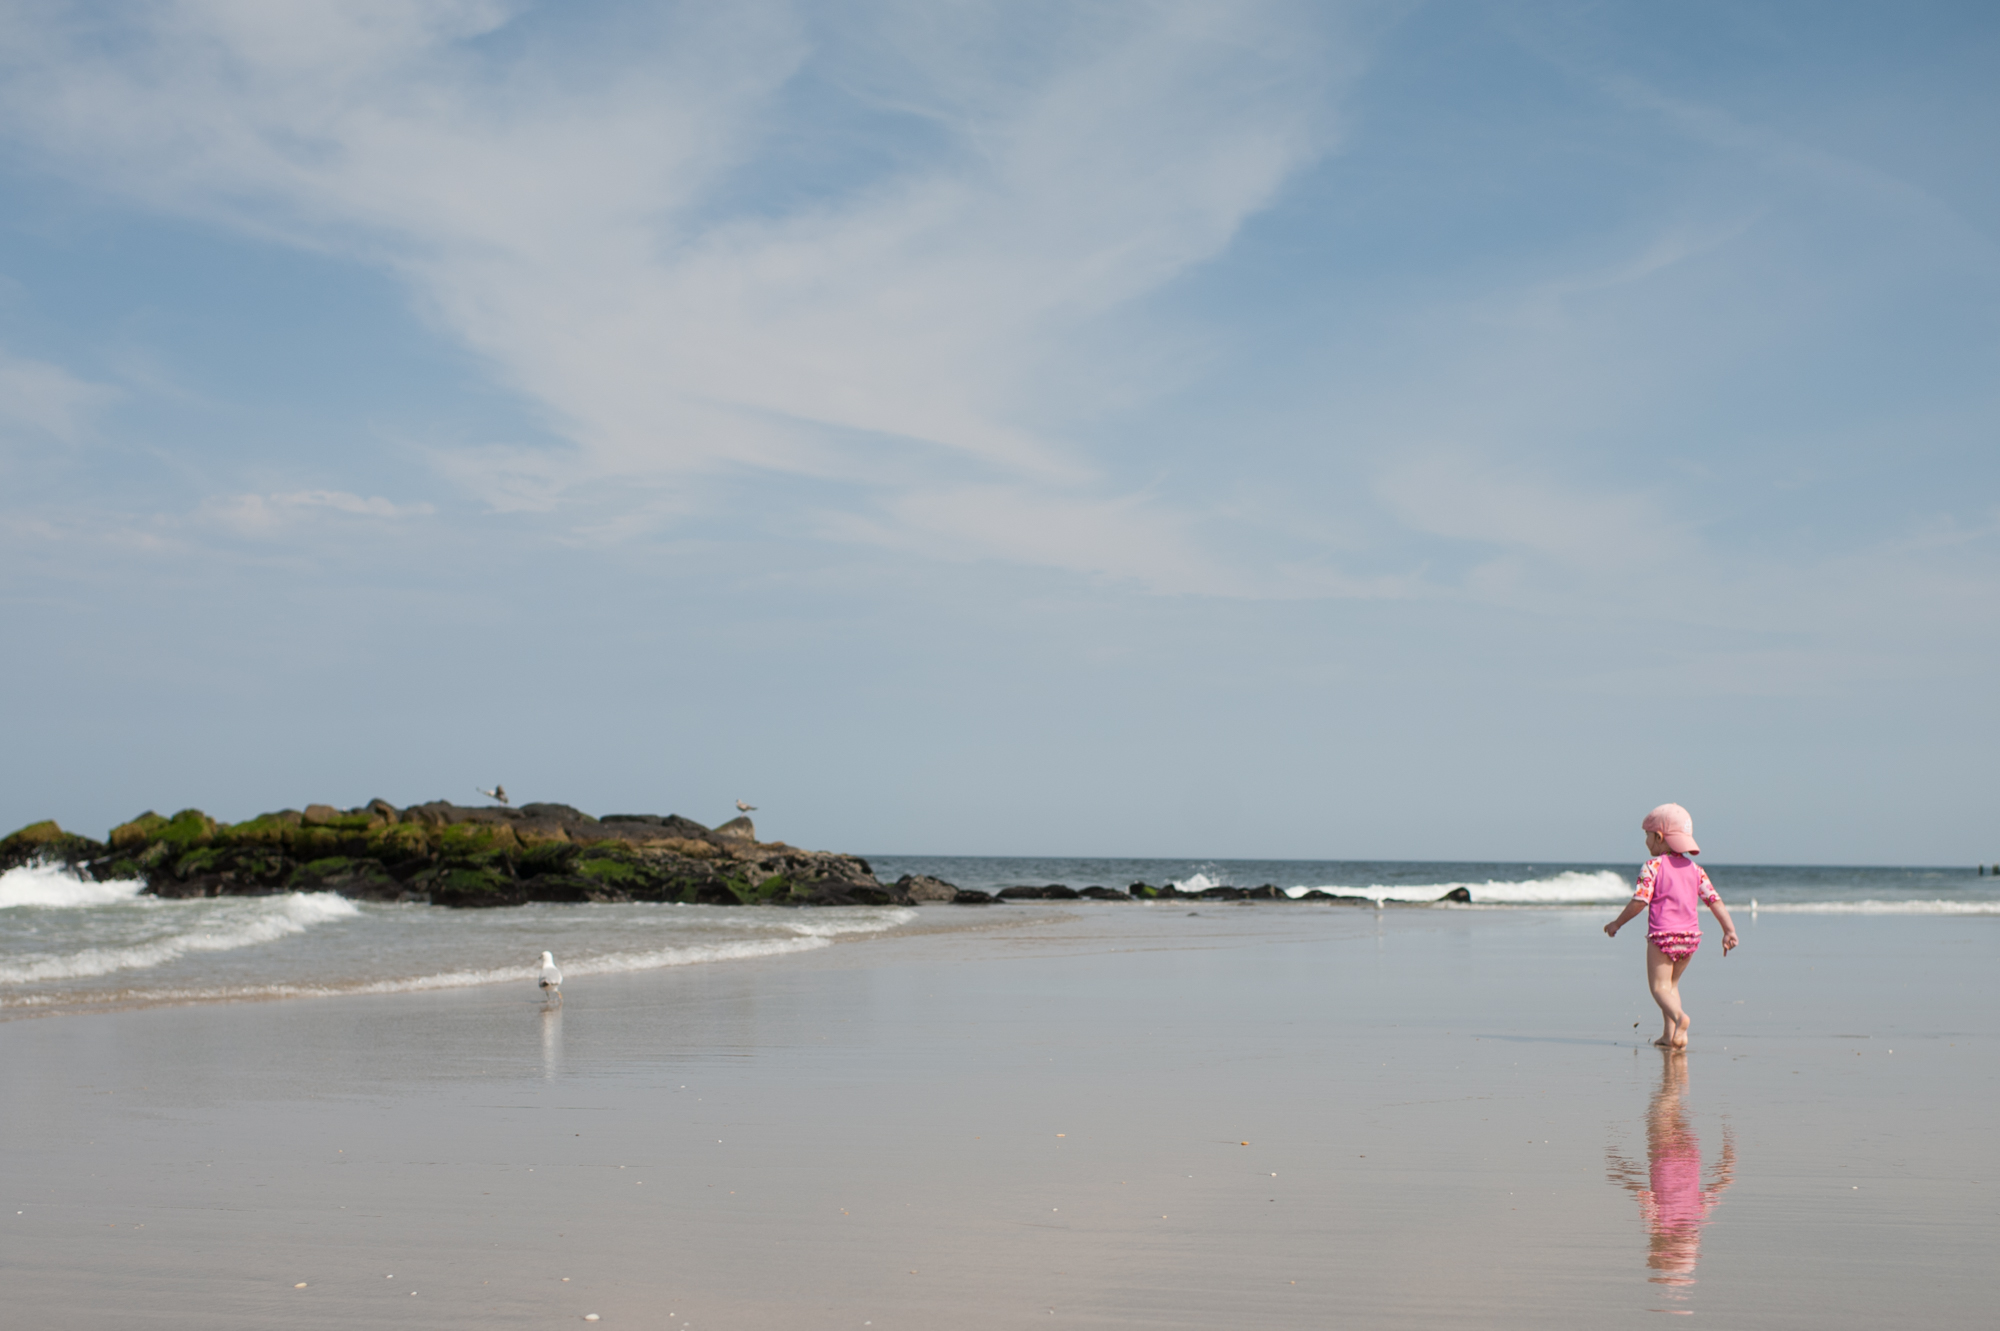 A child wearing a pink bathing suit is walking on the beach out toward a bird.